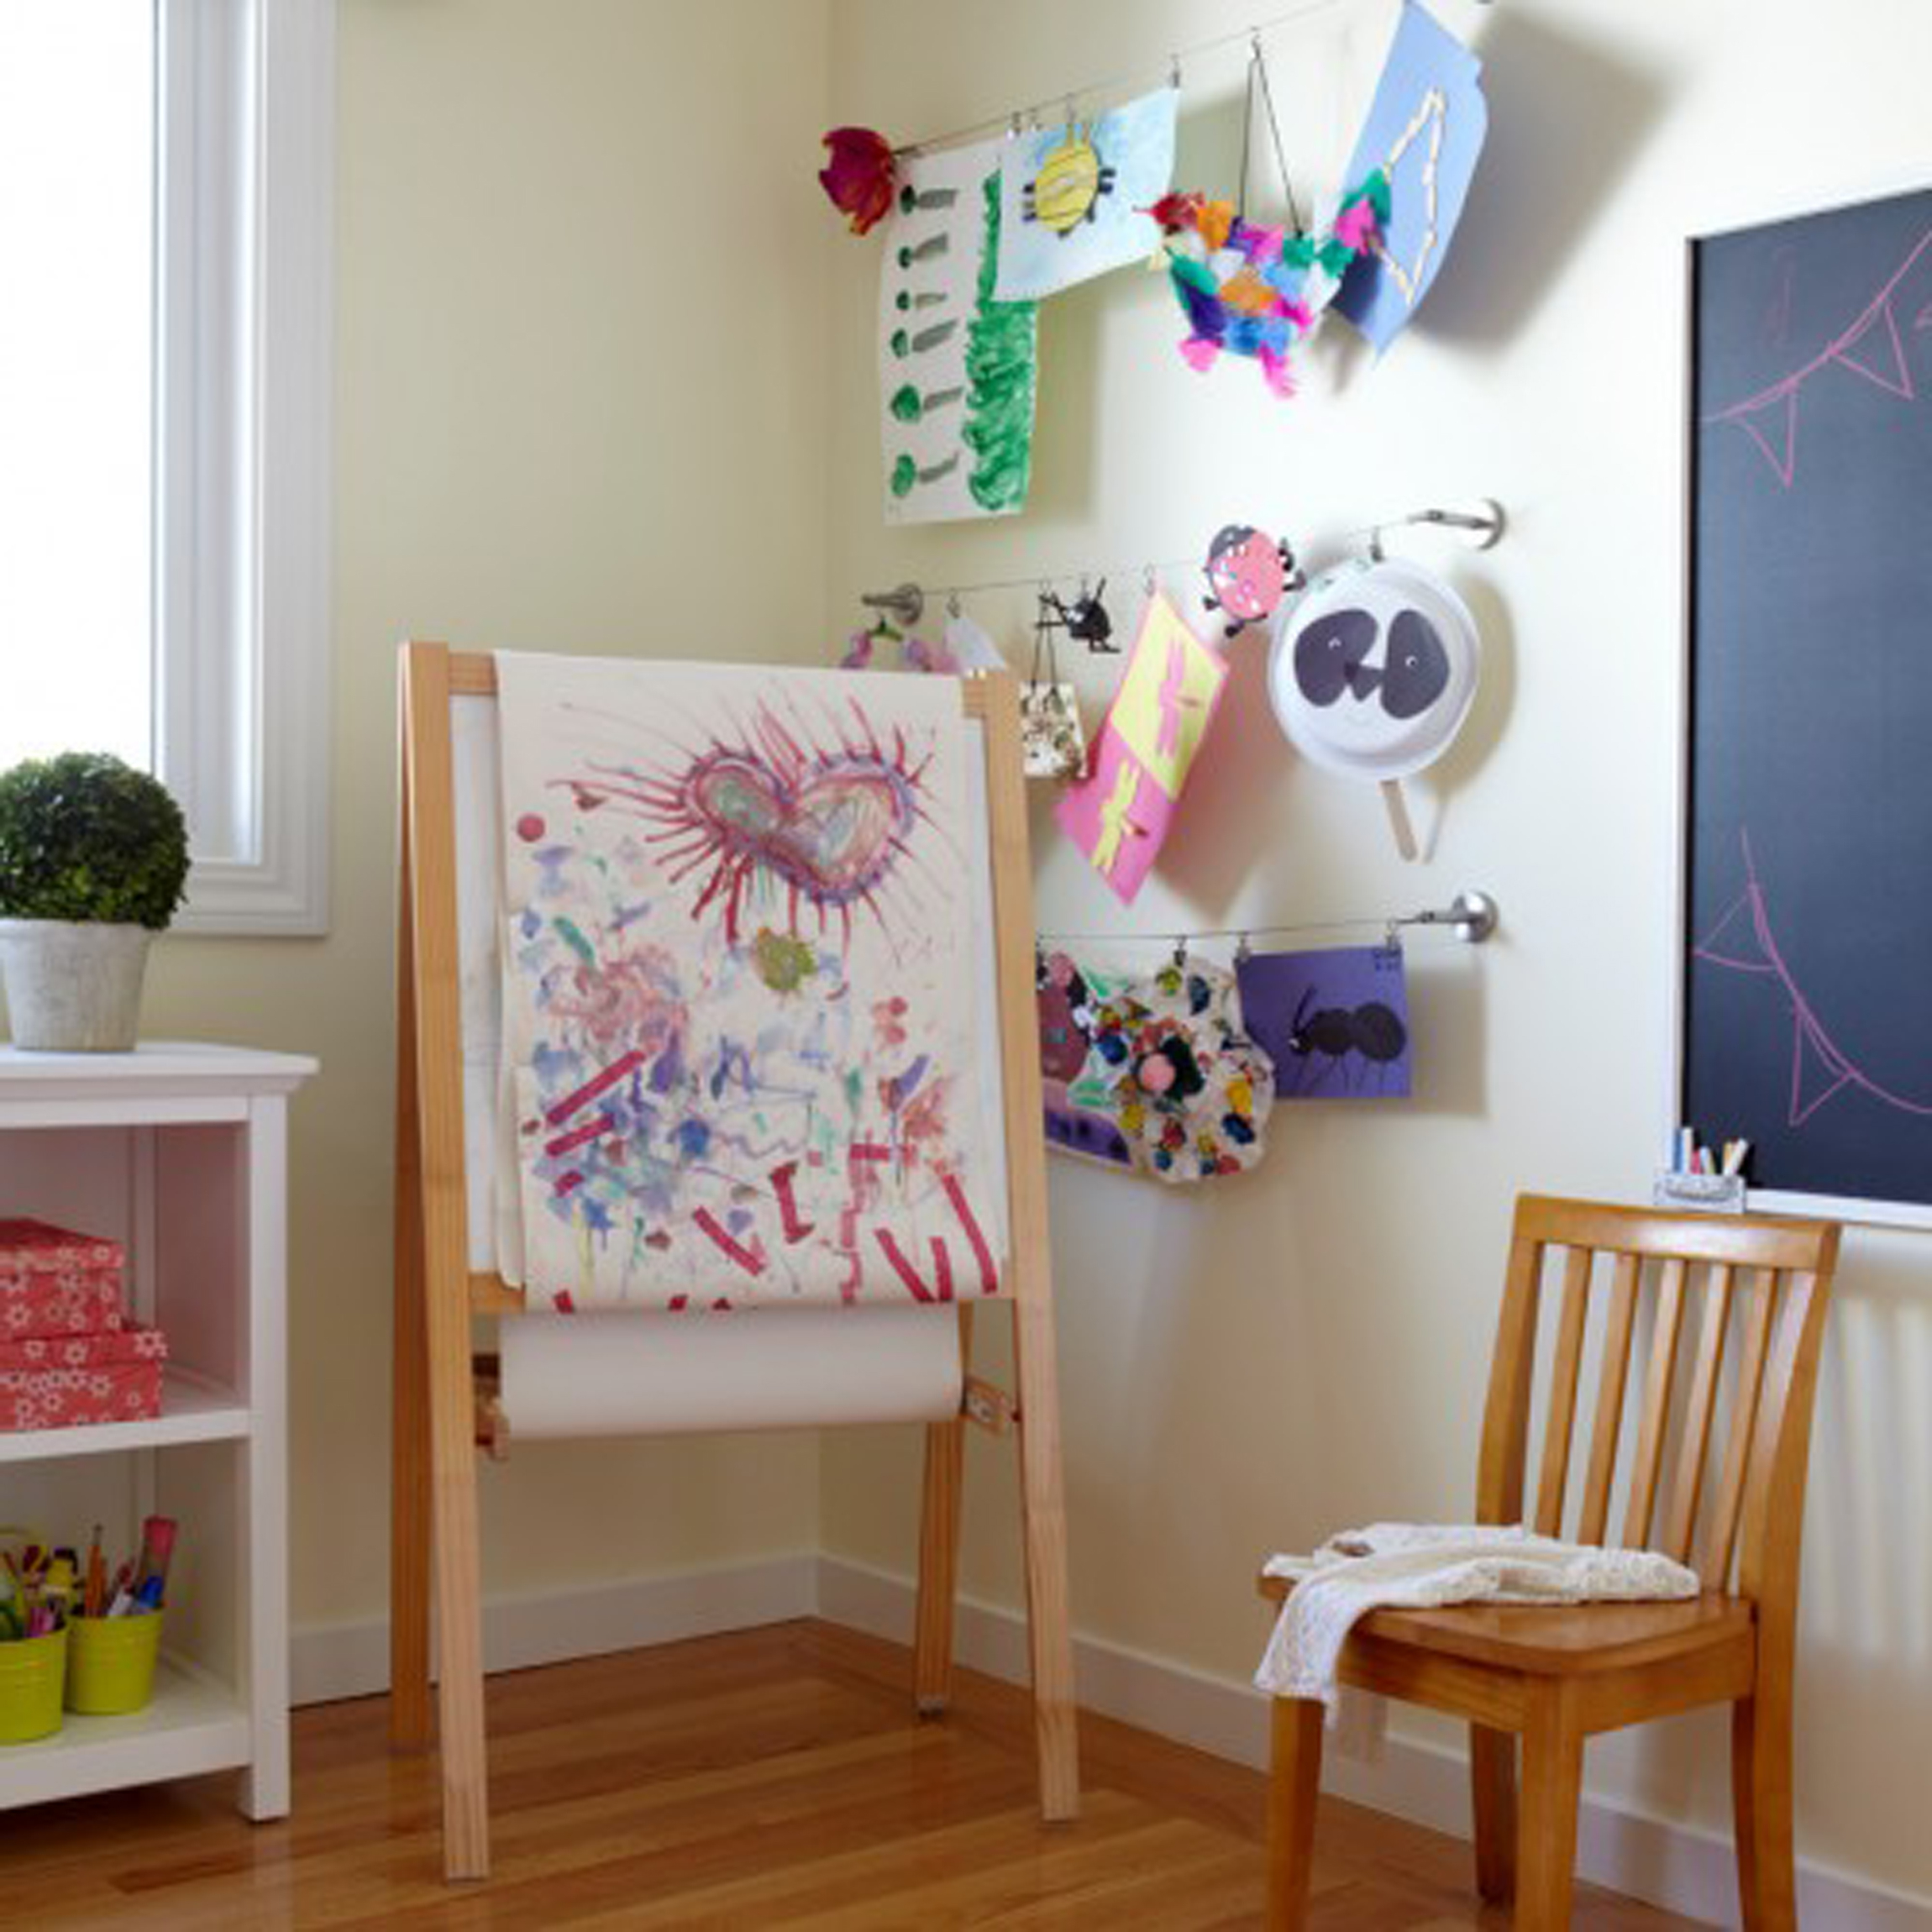 Kids Chalkboard Ideas For Kids Room Decoration And Agreeable Pine Wood Standing Canvas For Drawing Also Interesting Glossy Laminated Wood Flooring Decor (Image 21 of 28)